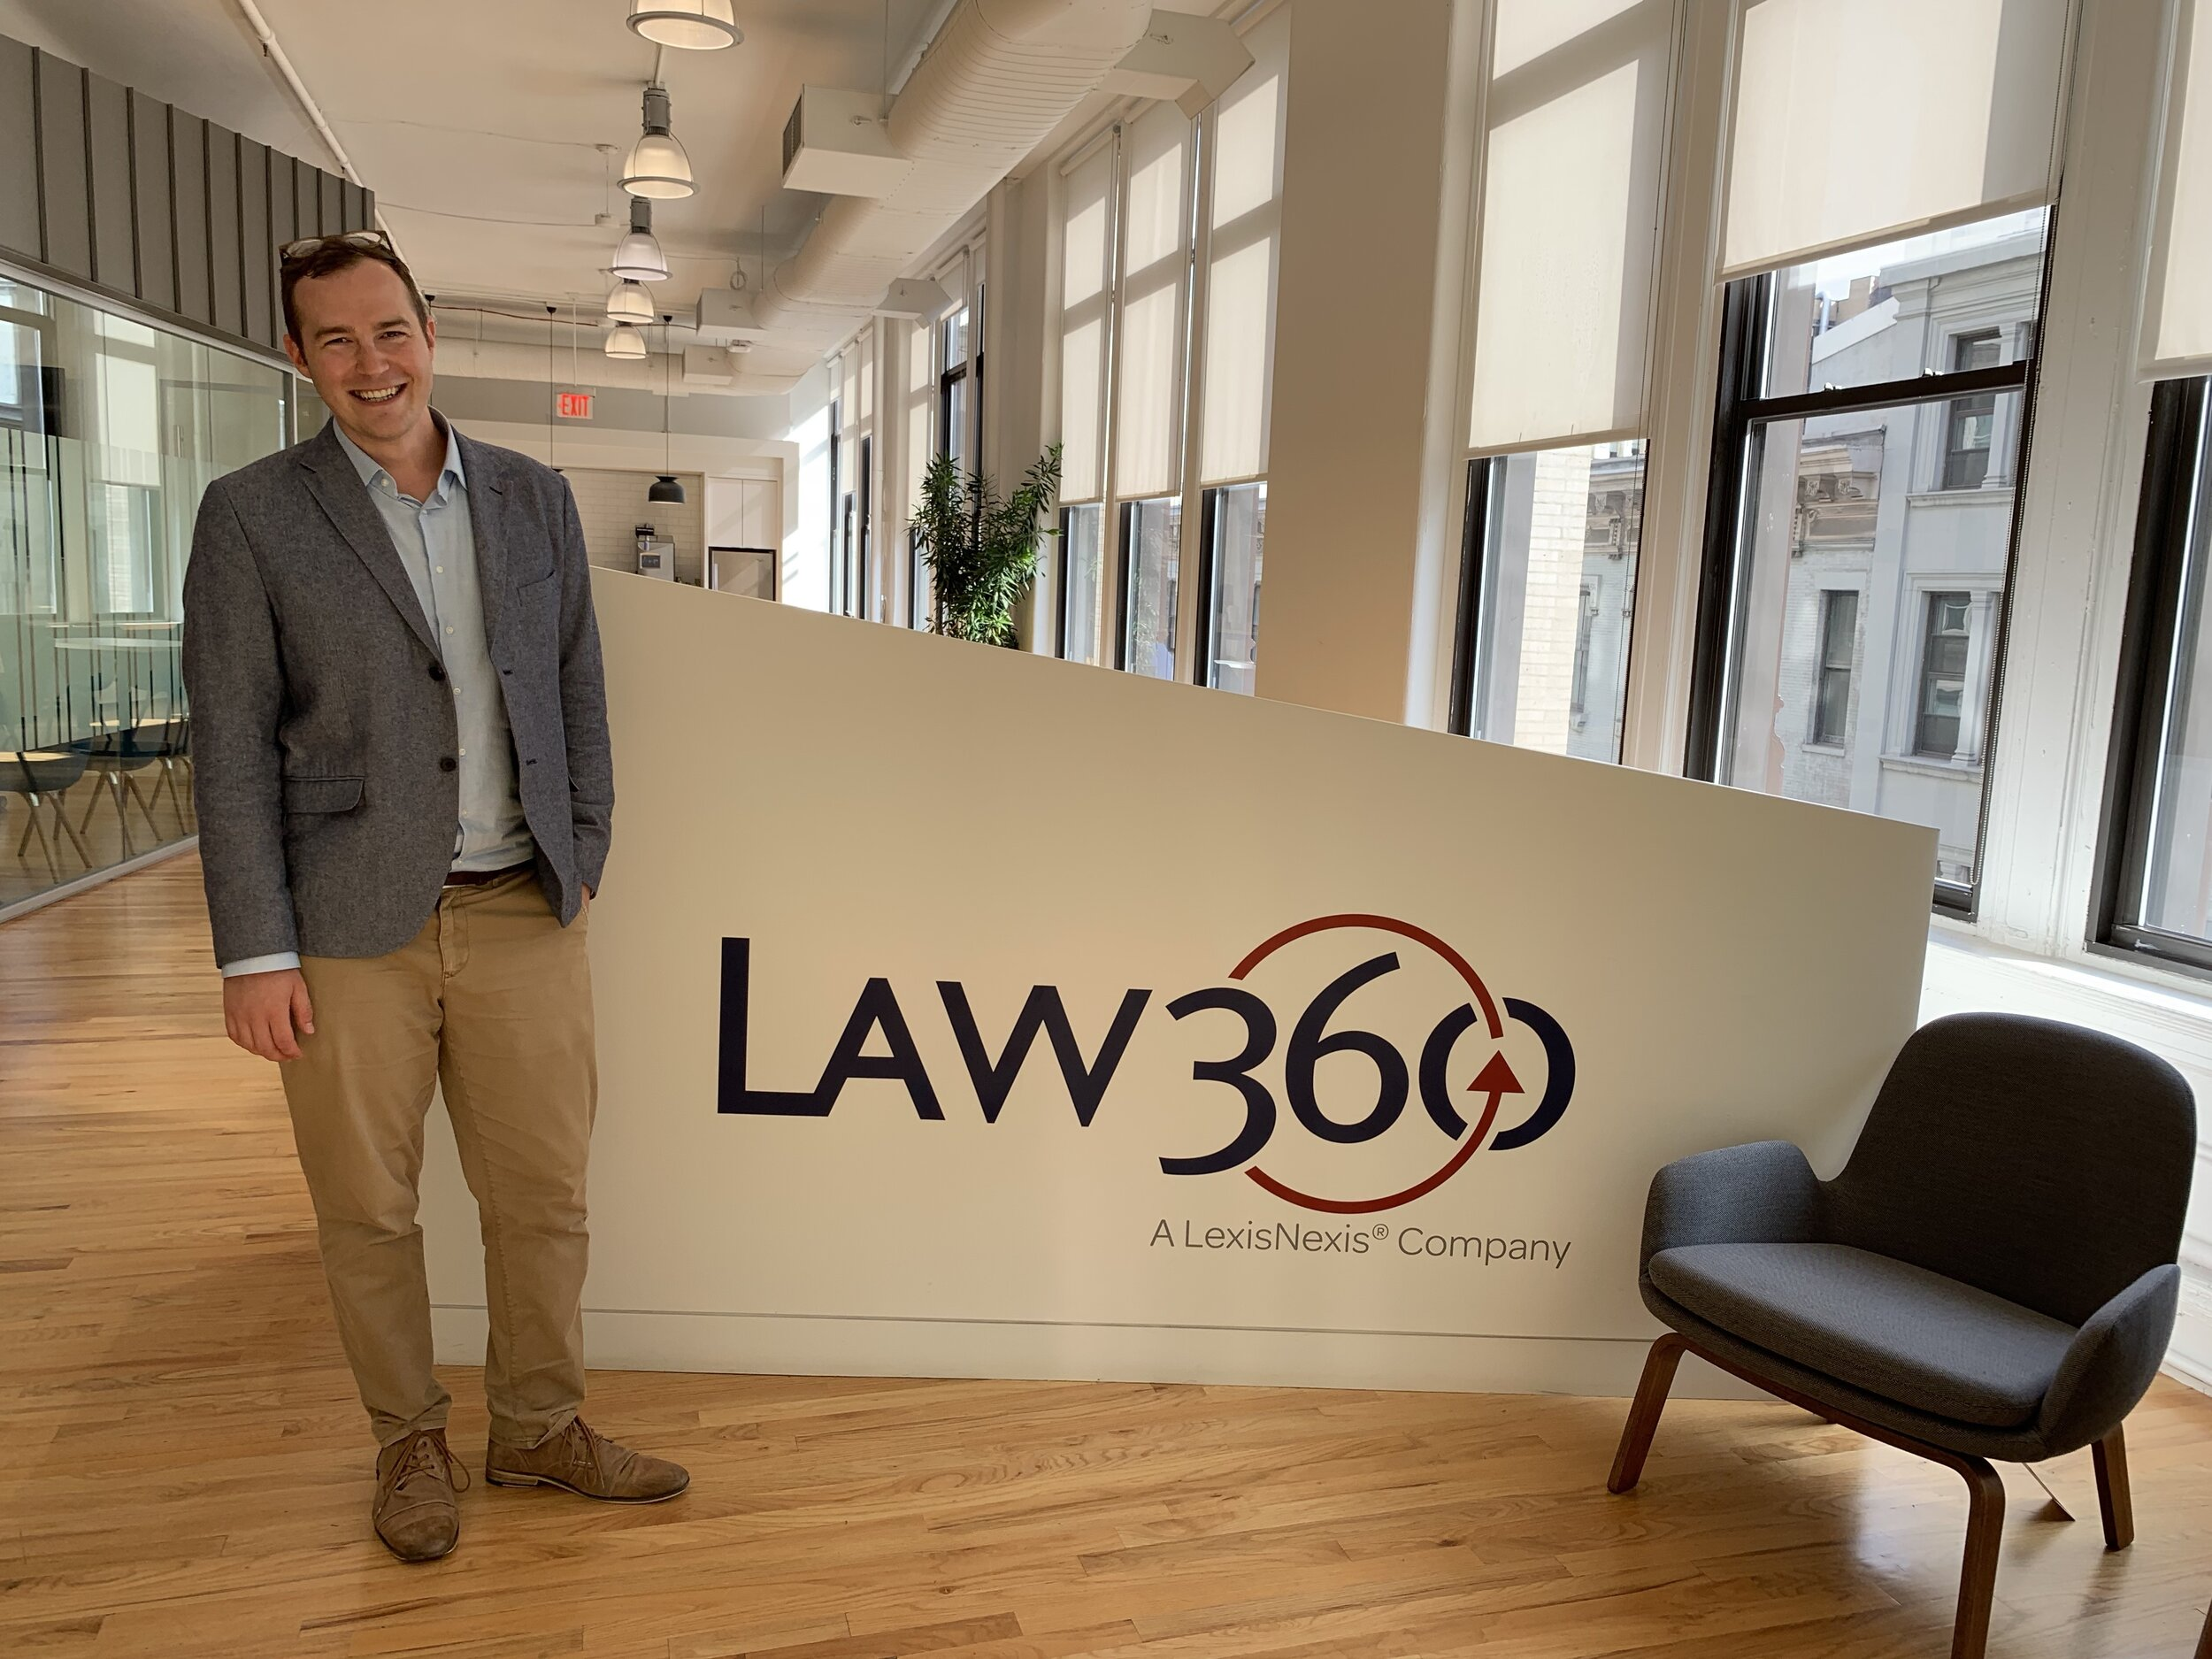 Jon visited the Law360 offices in Manhattan on Sept. 10.